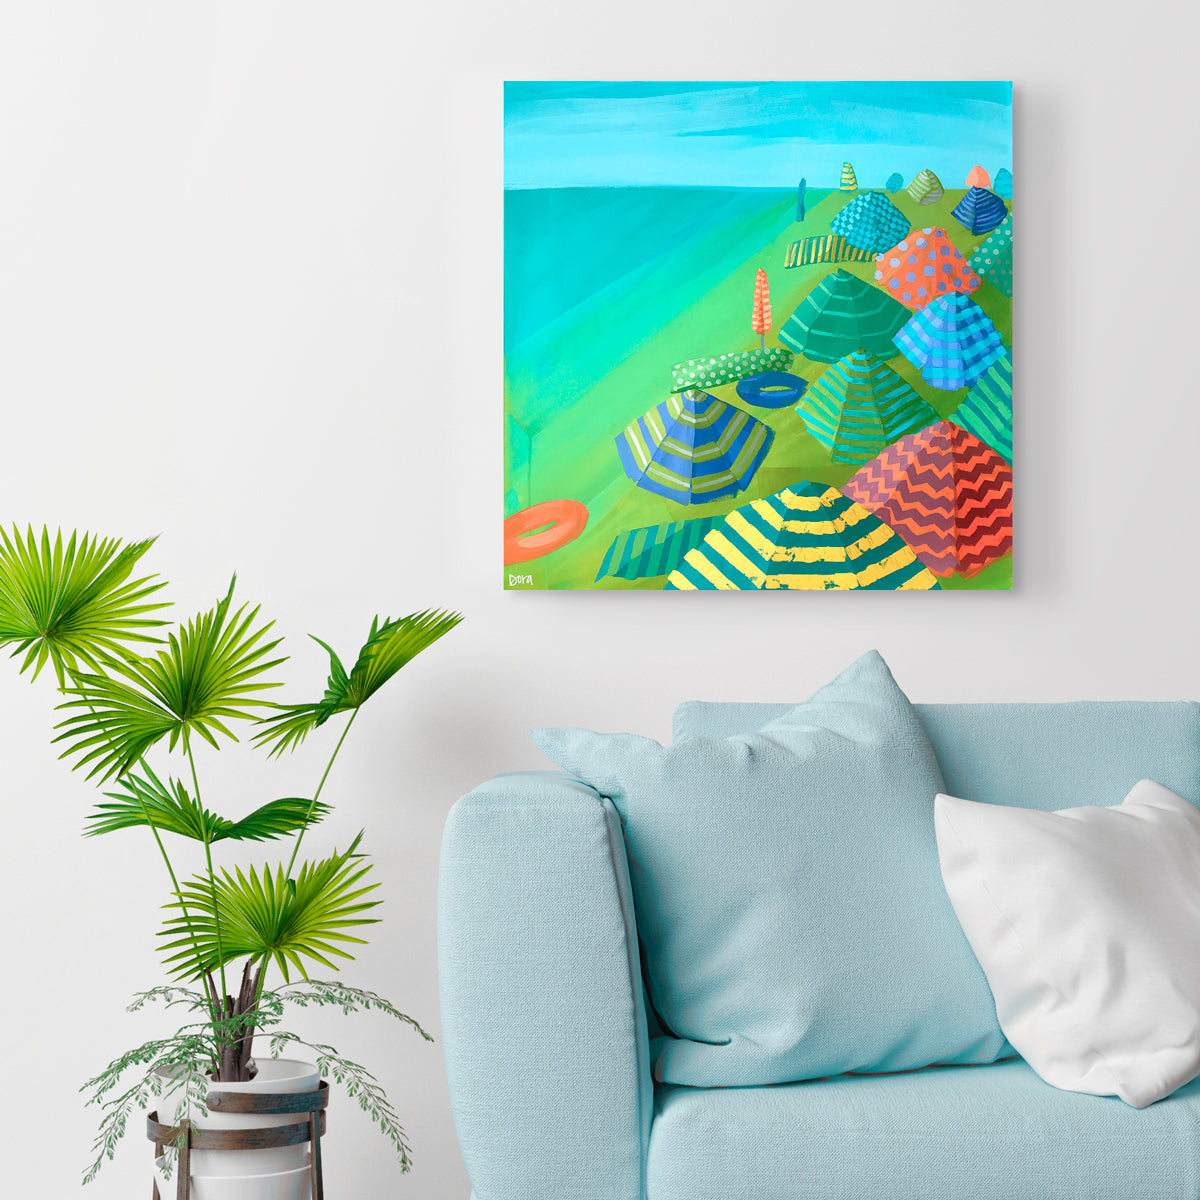 Wall Preview of Paradise Coast by Dora Knuteson